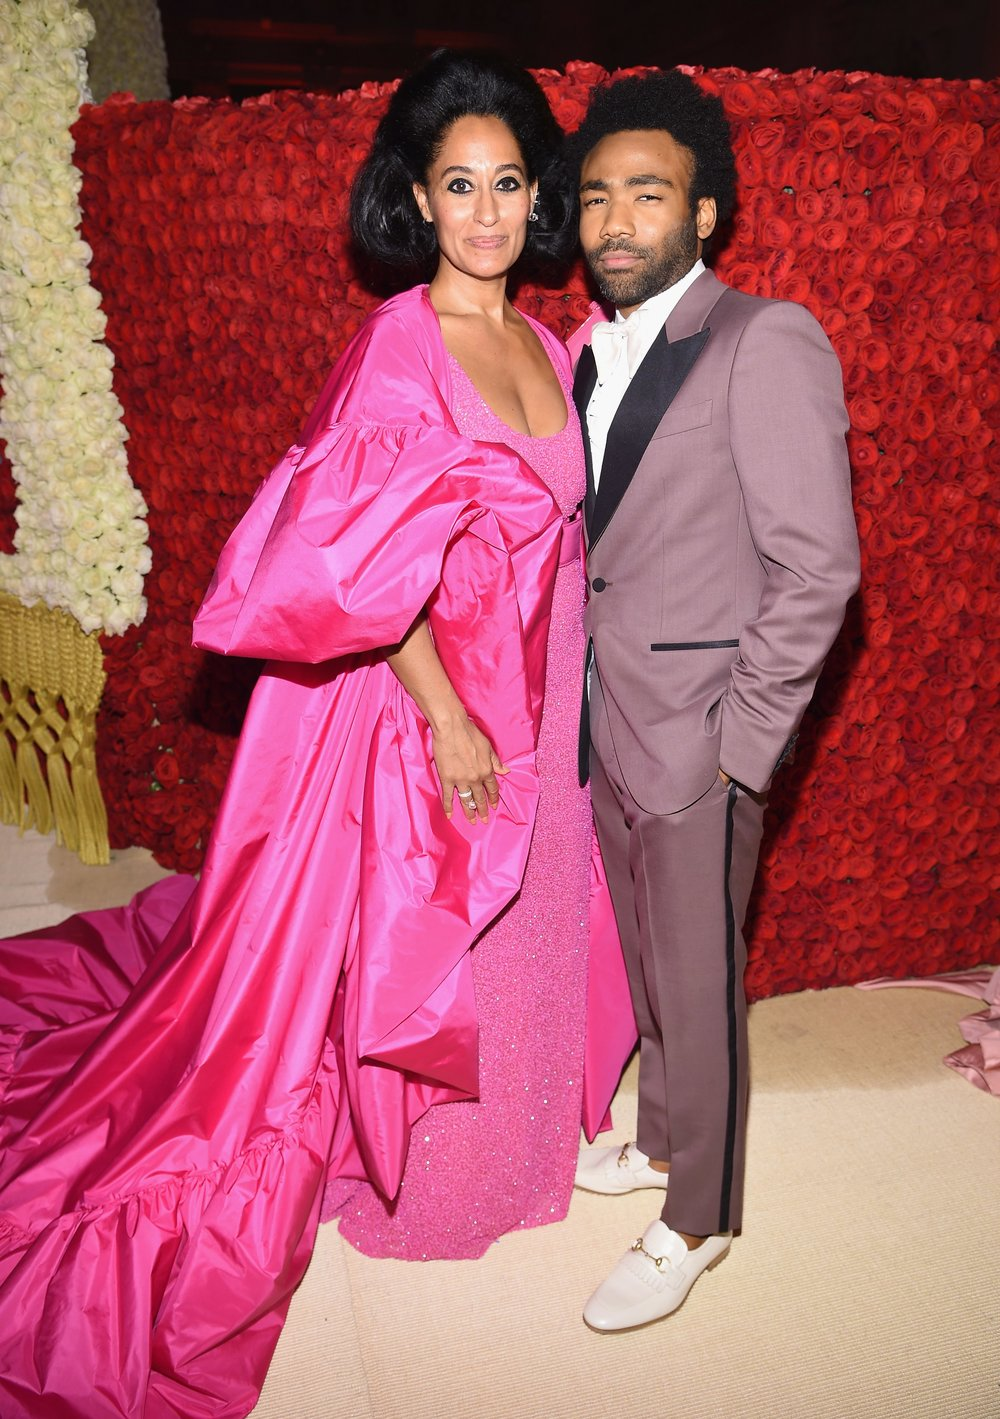 TRACEE ELLIS ROSS AND DONALD GLOVER MET GALA RED CARPET.jpg